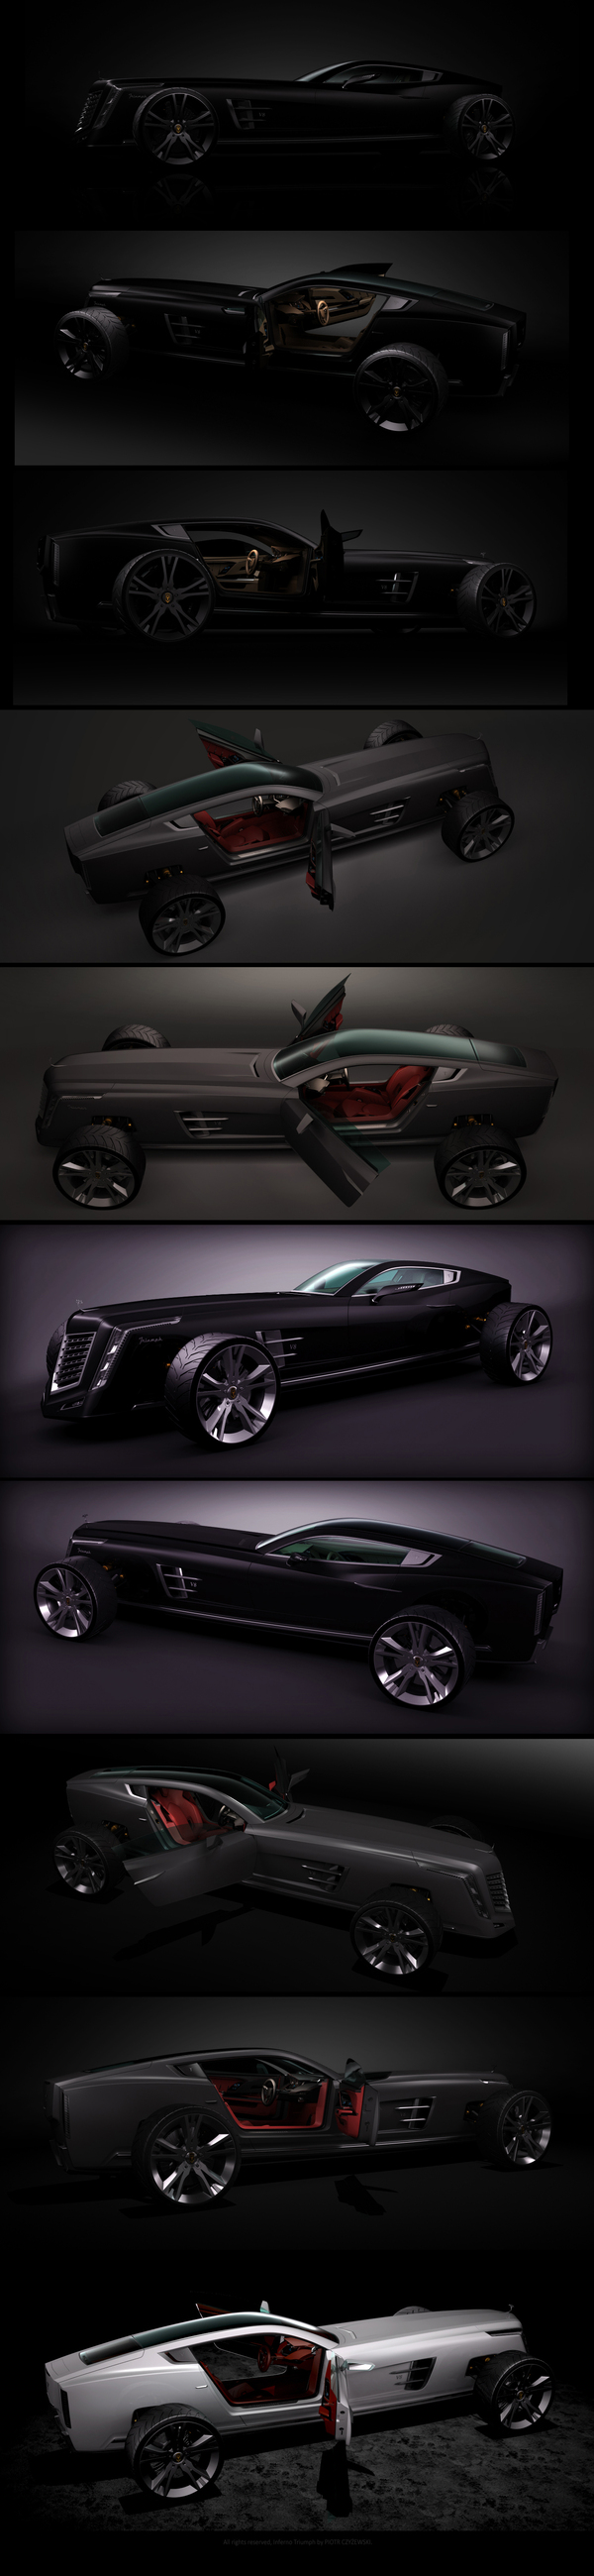 Piotr Czyzewski   Inferno Triumph transport  transport supercar prototype motorsport design index design concept car concept